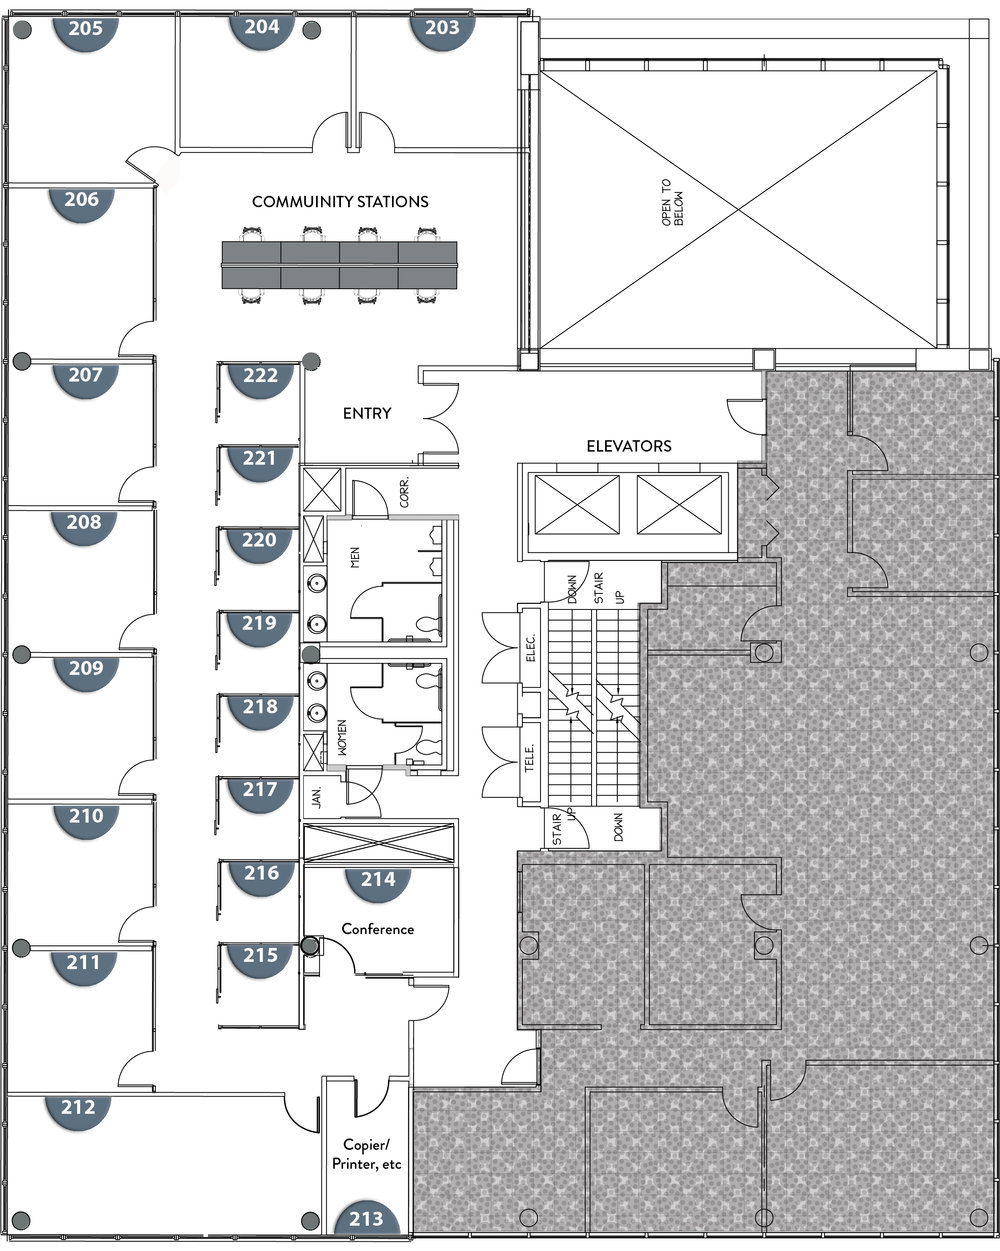 2nd floor layout-2017.jpg